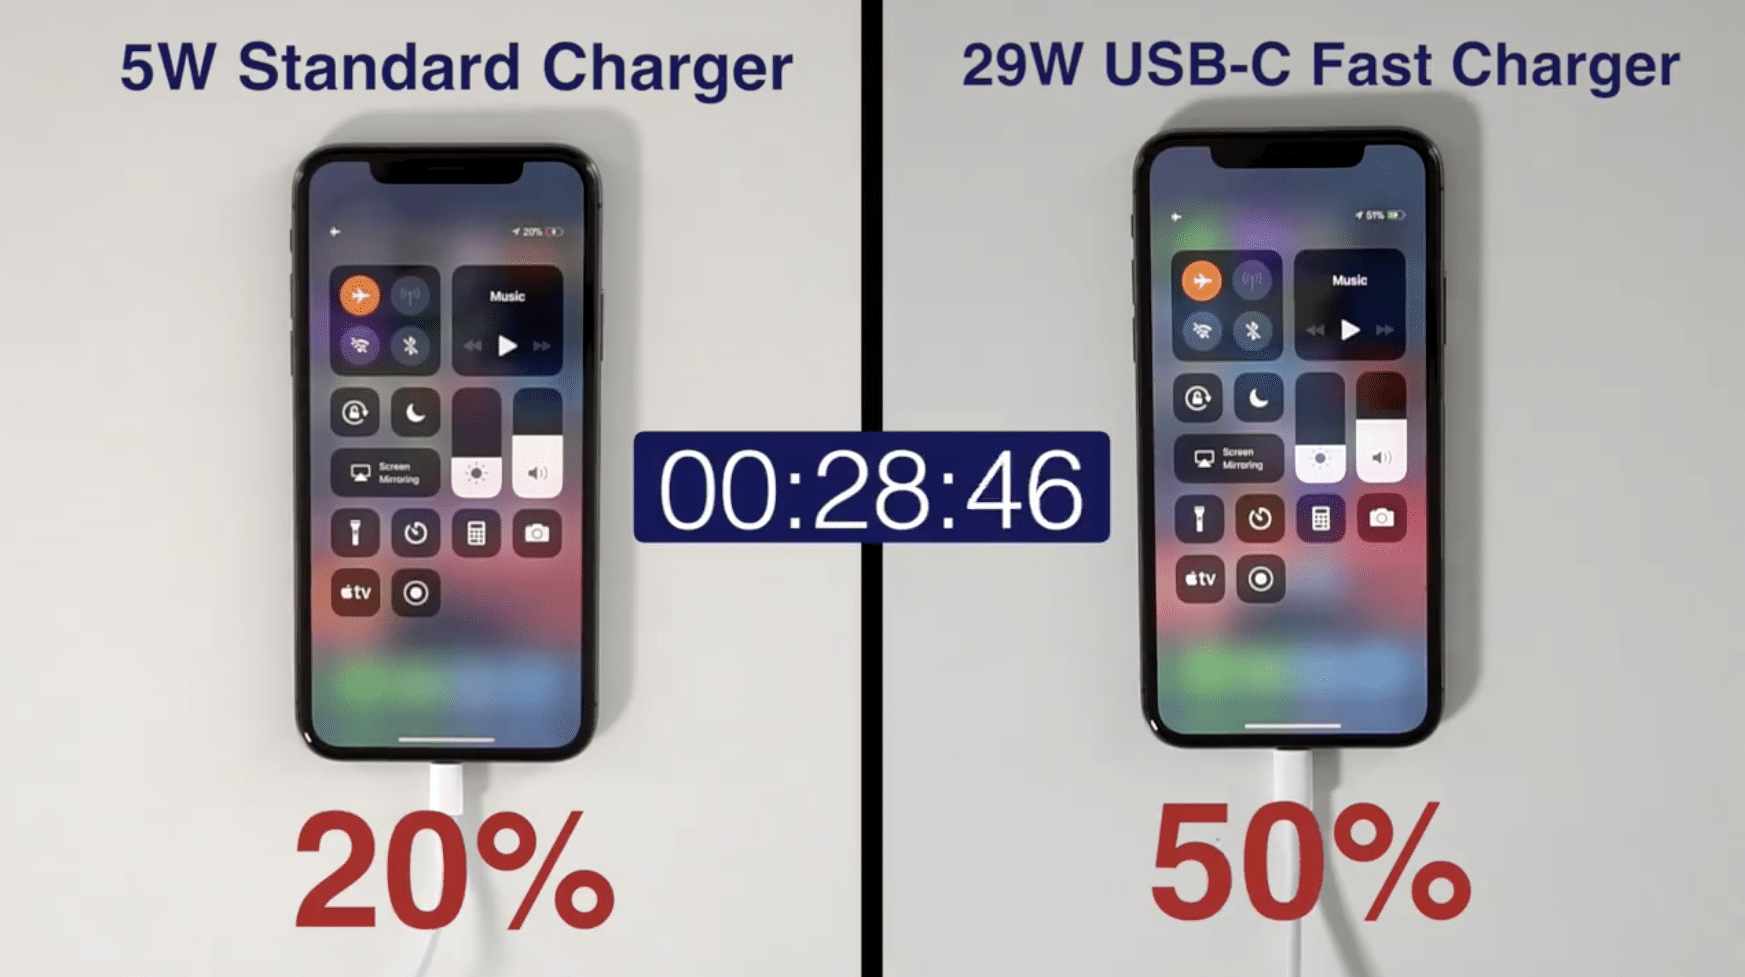 fast charging iphone x 80 percent in 1 hr-1